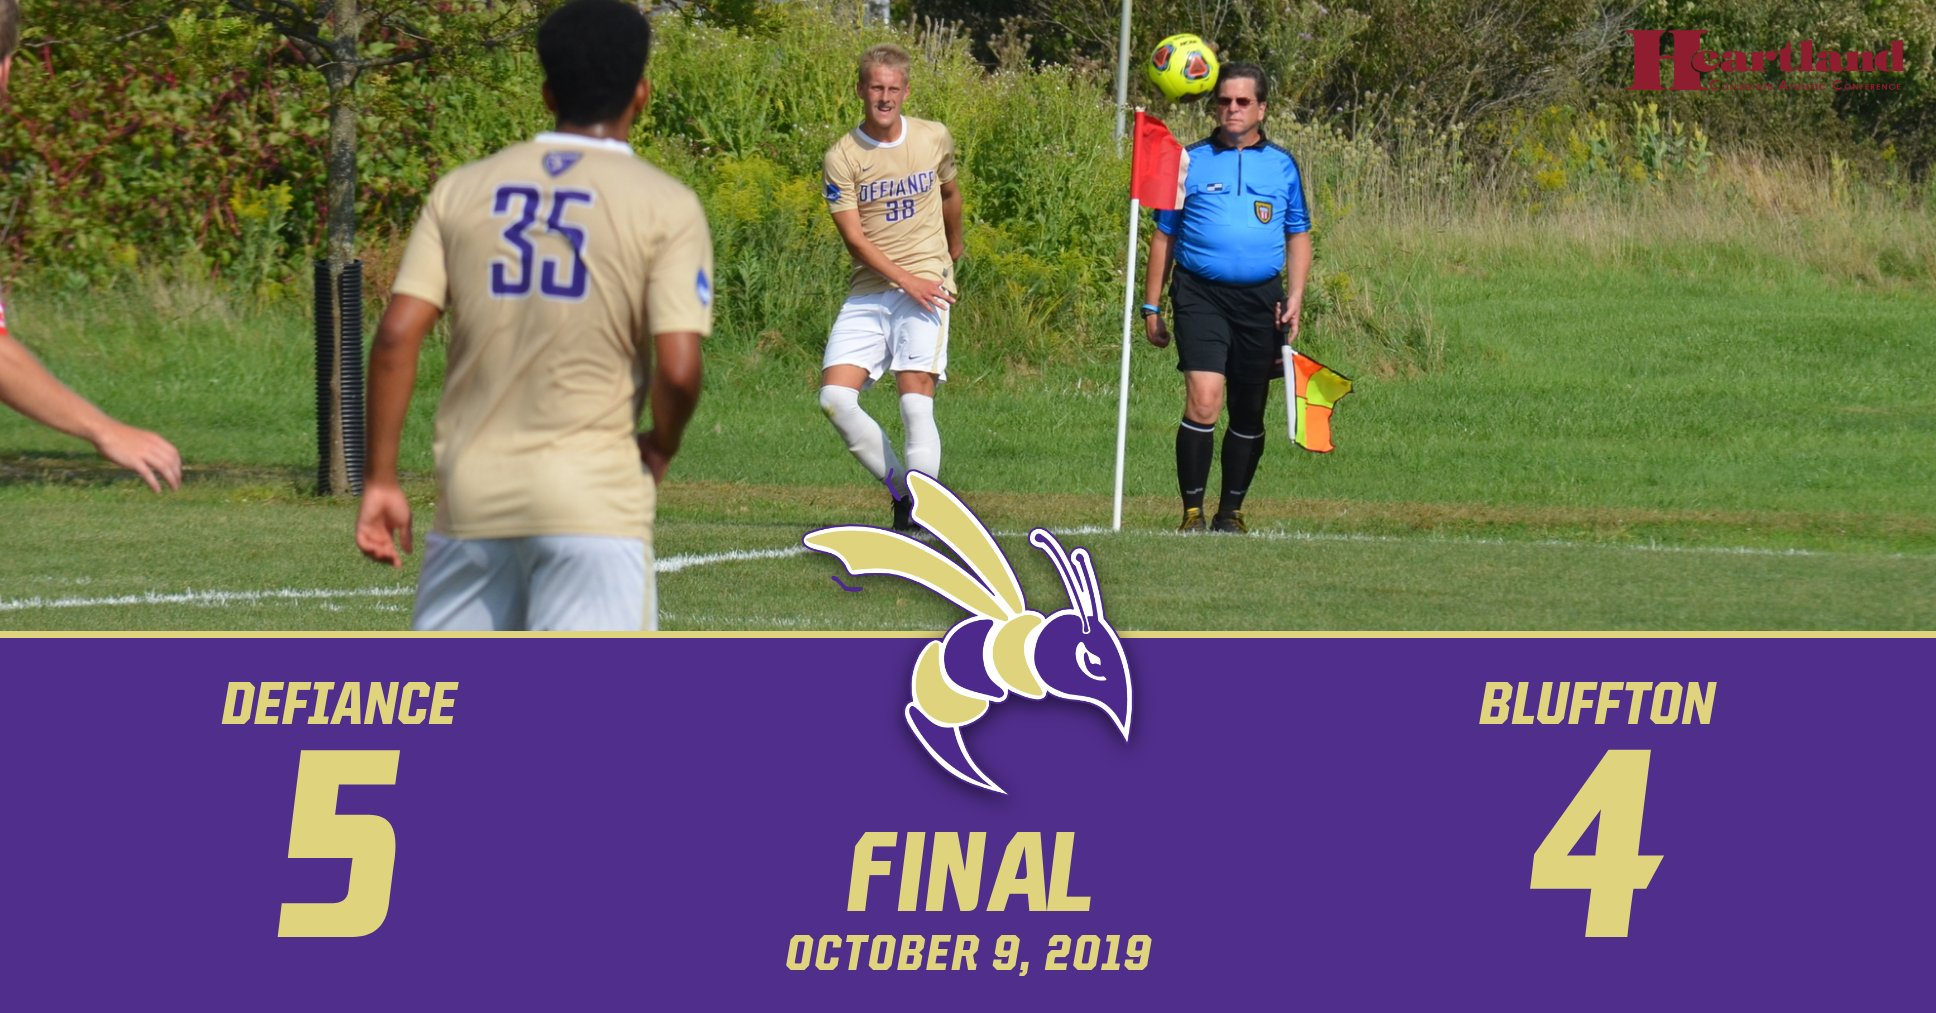 Men's Soccer Continues Winning Ways at Bluffton